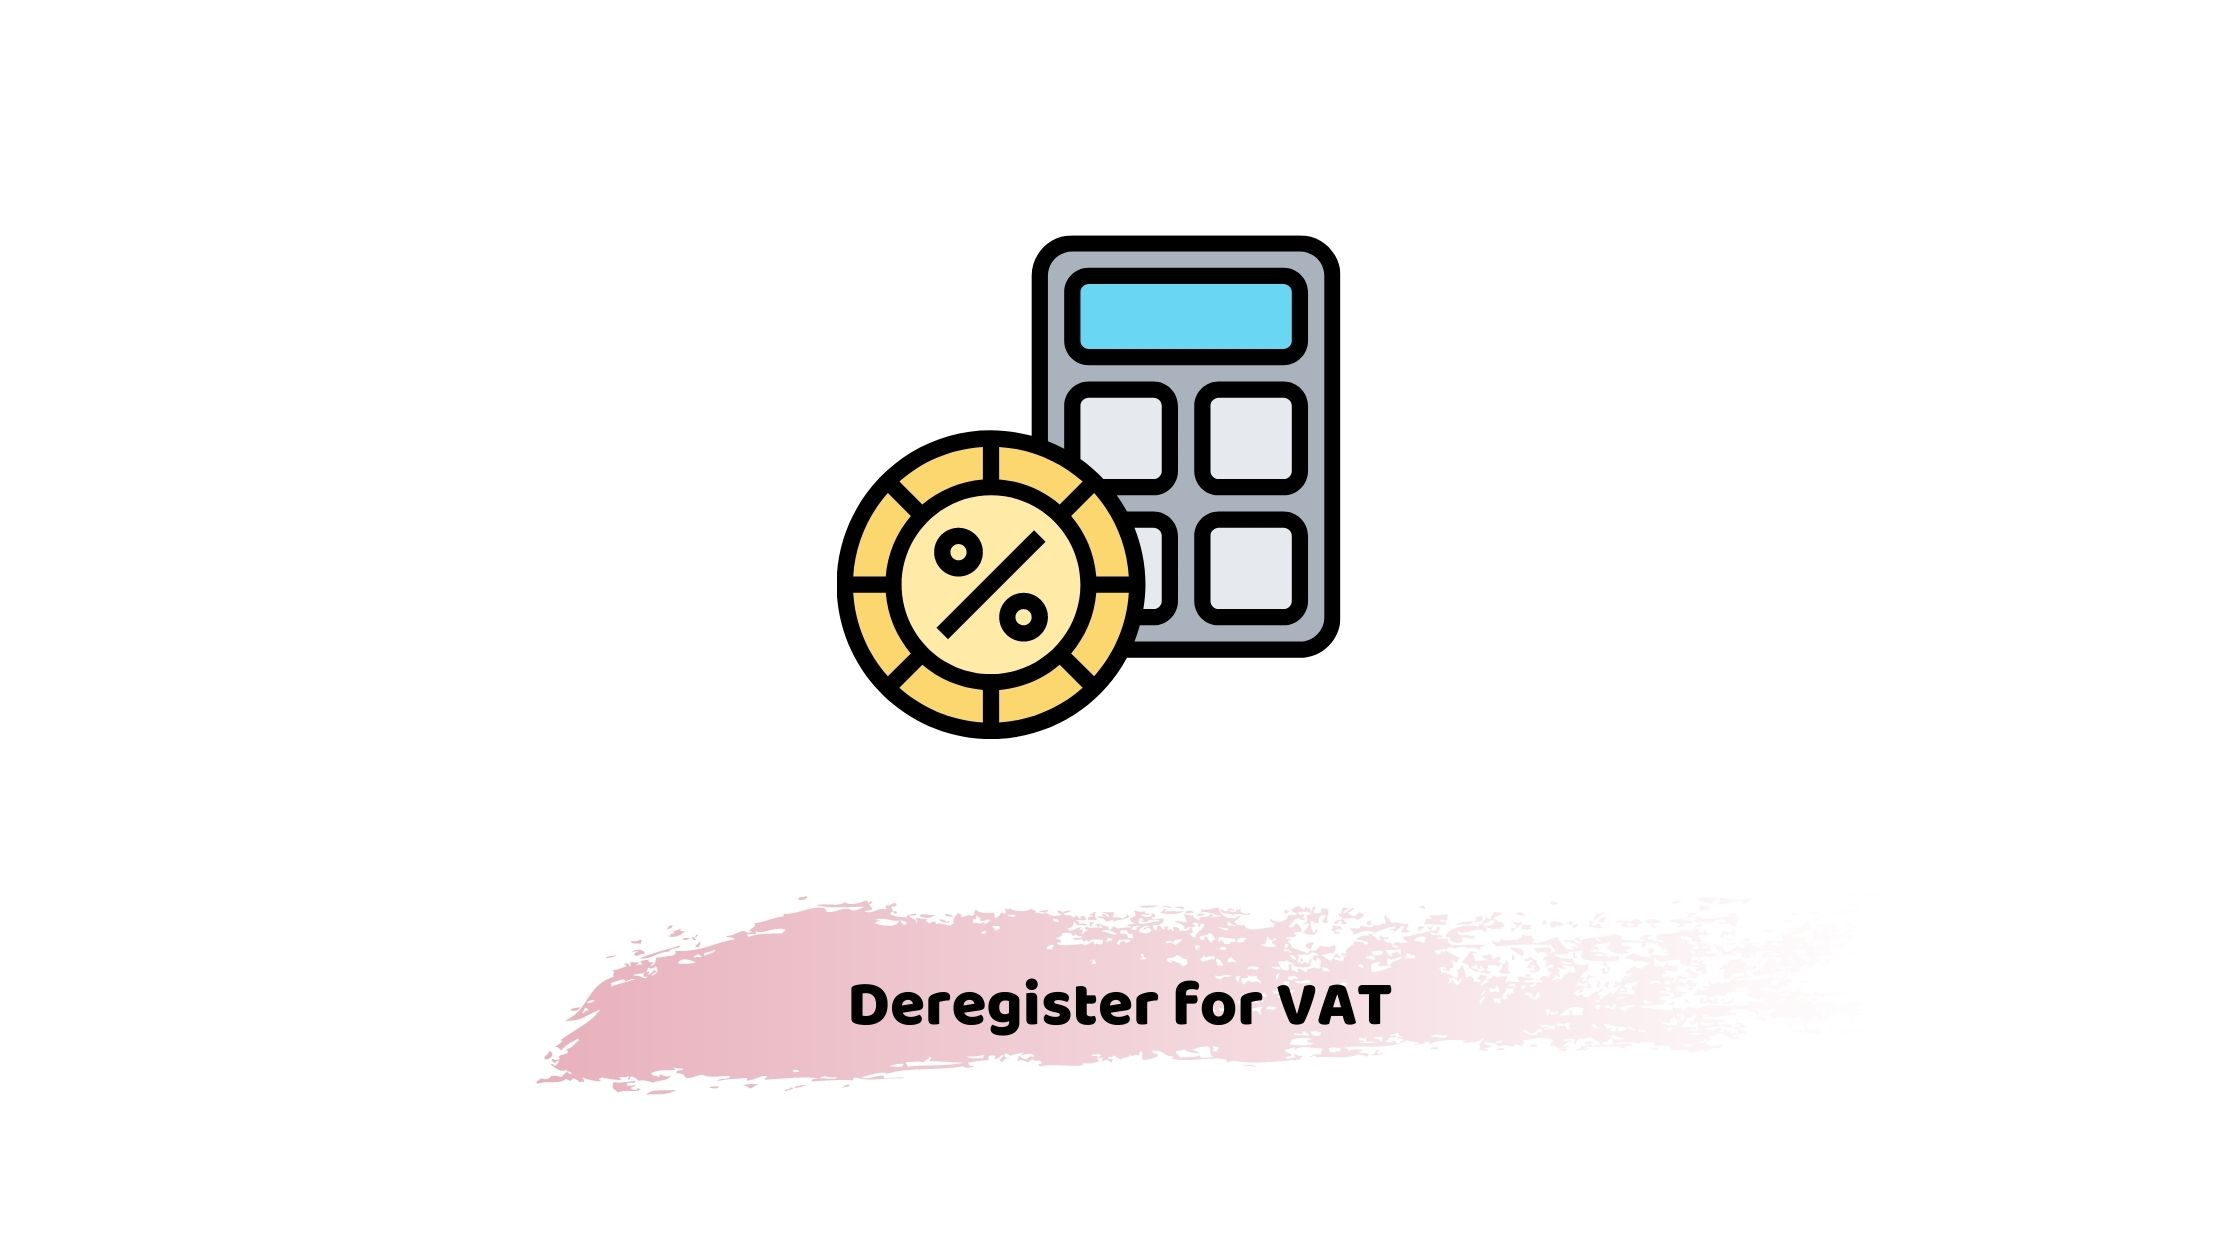 how to deregister for vat